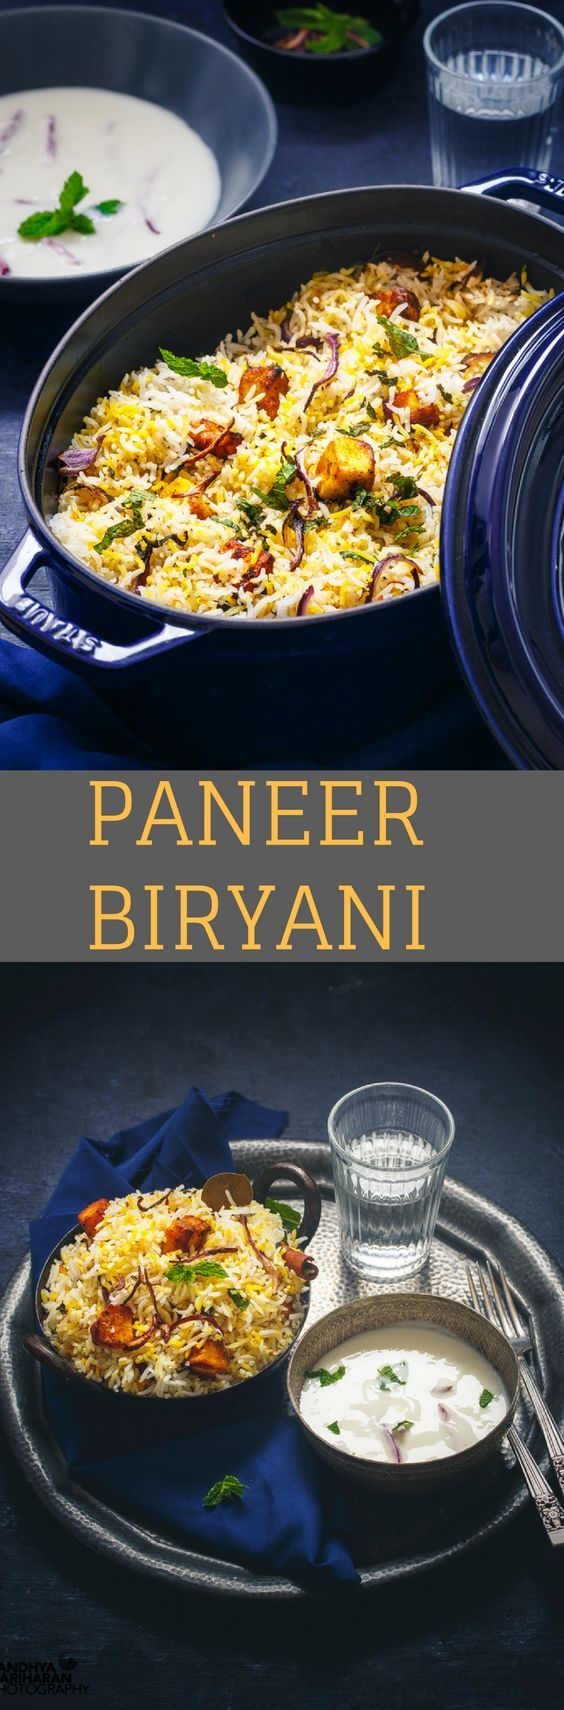 Paneer Biryani, unlike other regular Vegetable Biryani is an enhanced version of Pulao Rice.Perfect to make for a celebration or even as a part of weekend Menu. Also featuring my grand 'New' Staub Cocotte from Zwilling UK.